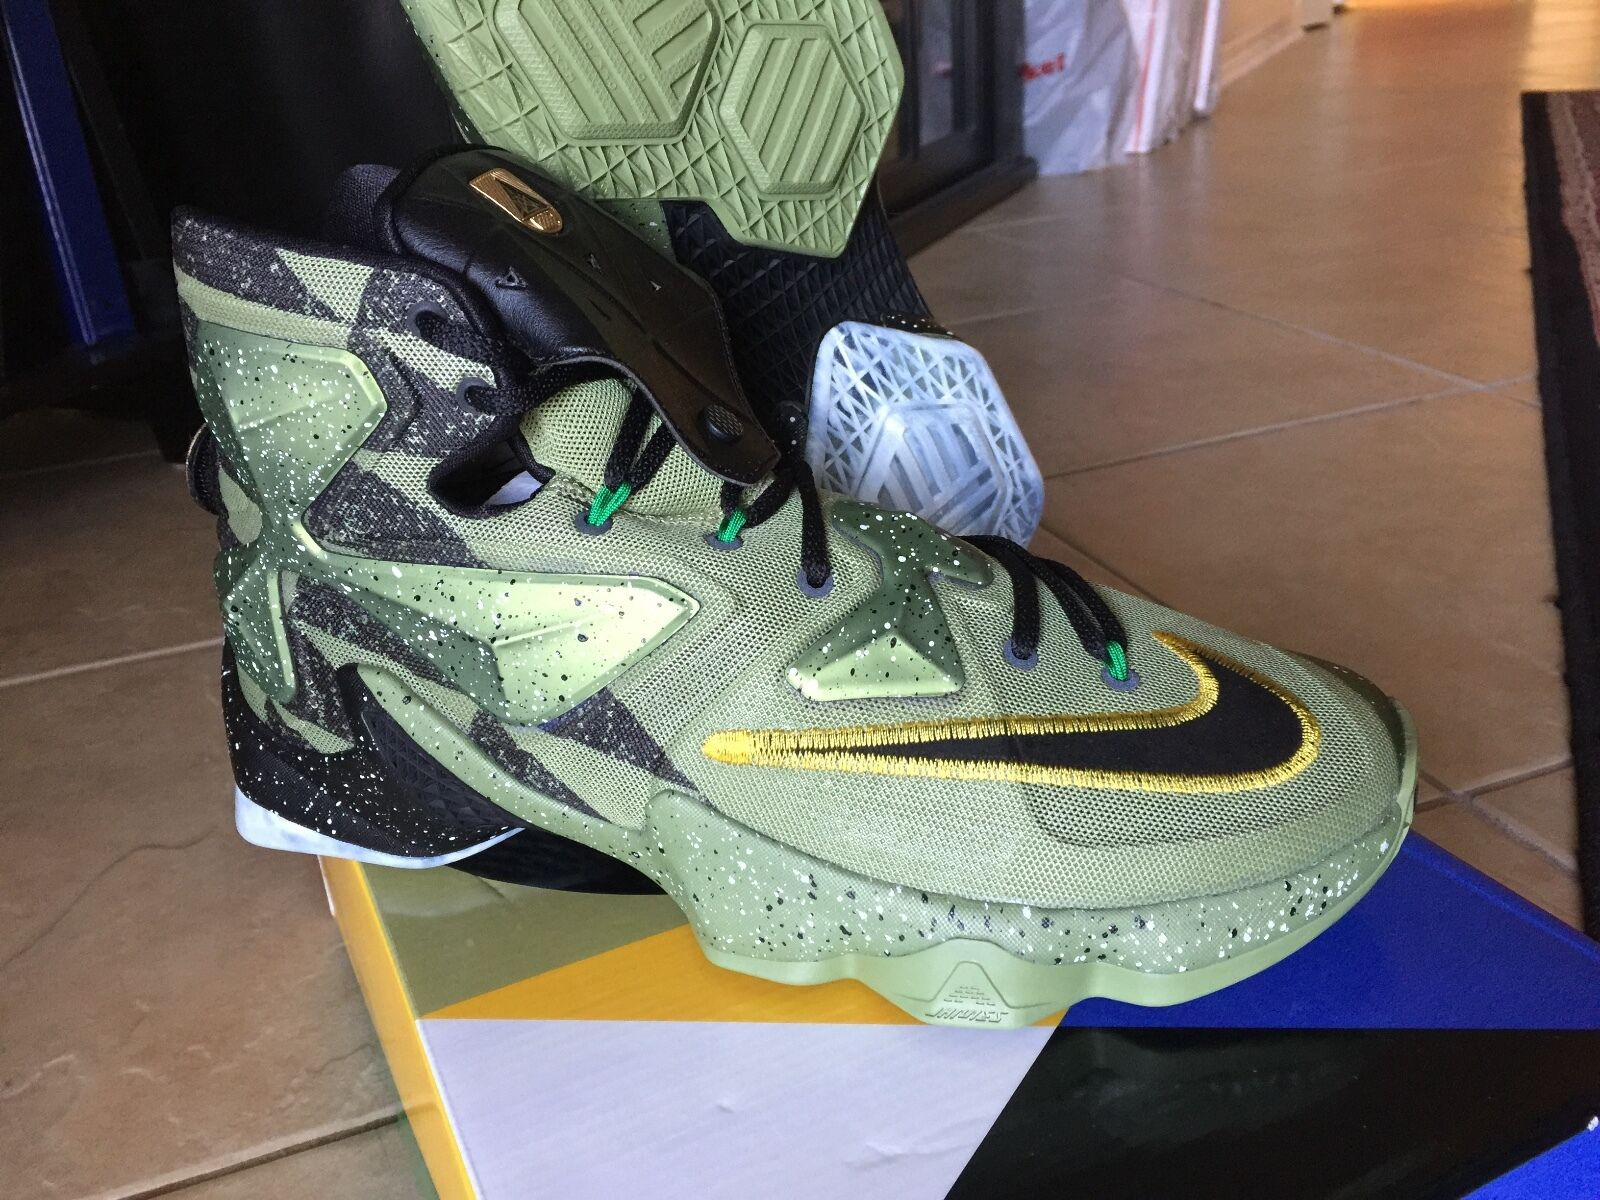 Nike AIR LEBRON XII All Star Game ASG 13 10.5 10 9.5 8 What The GOLD 11 Black 12